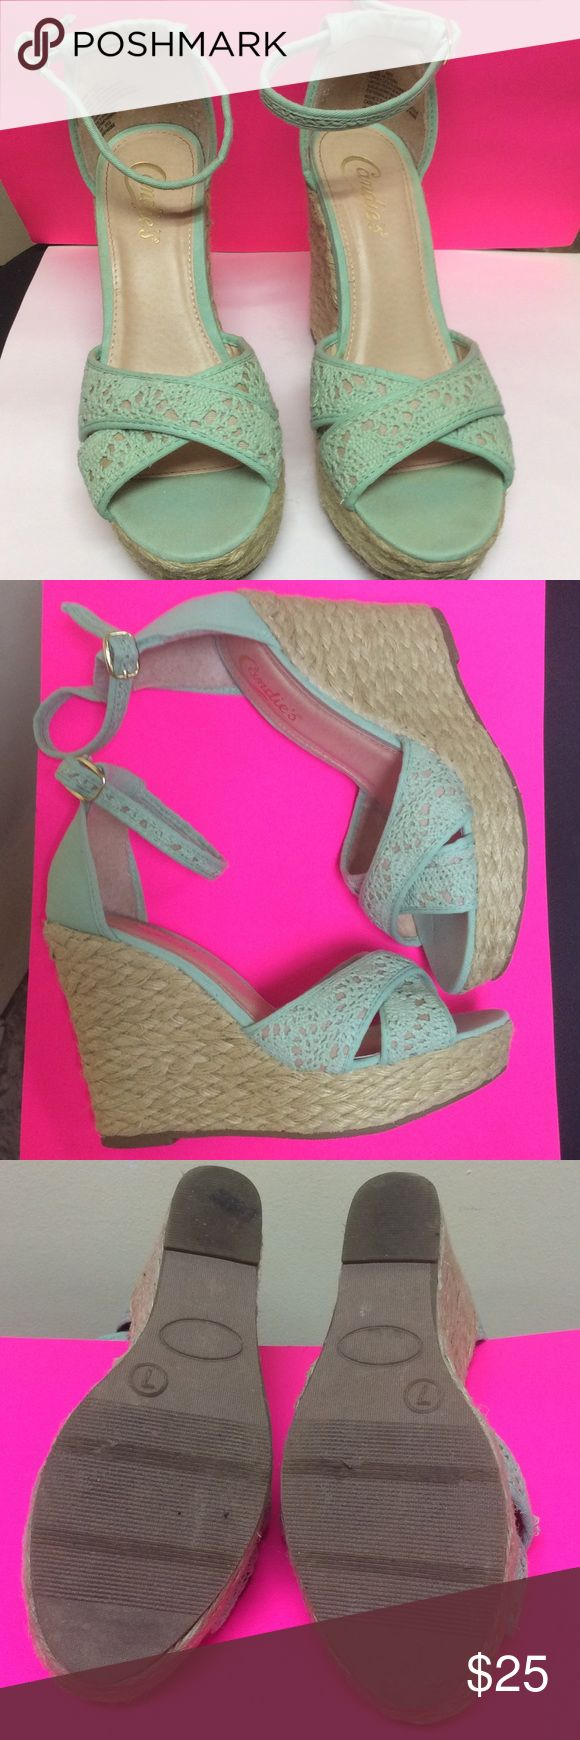 Candies 🍭Mint Green Wedges Size 7 Mint Green wedges with tan woven heels. Has normal wear but in EUC! Candie's Shoes Wedges